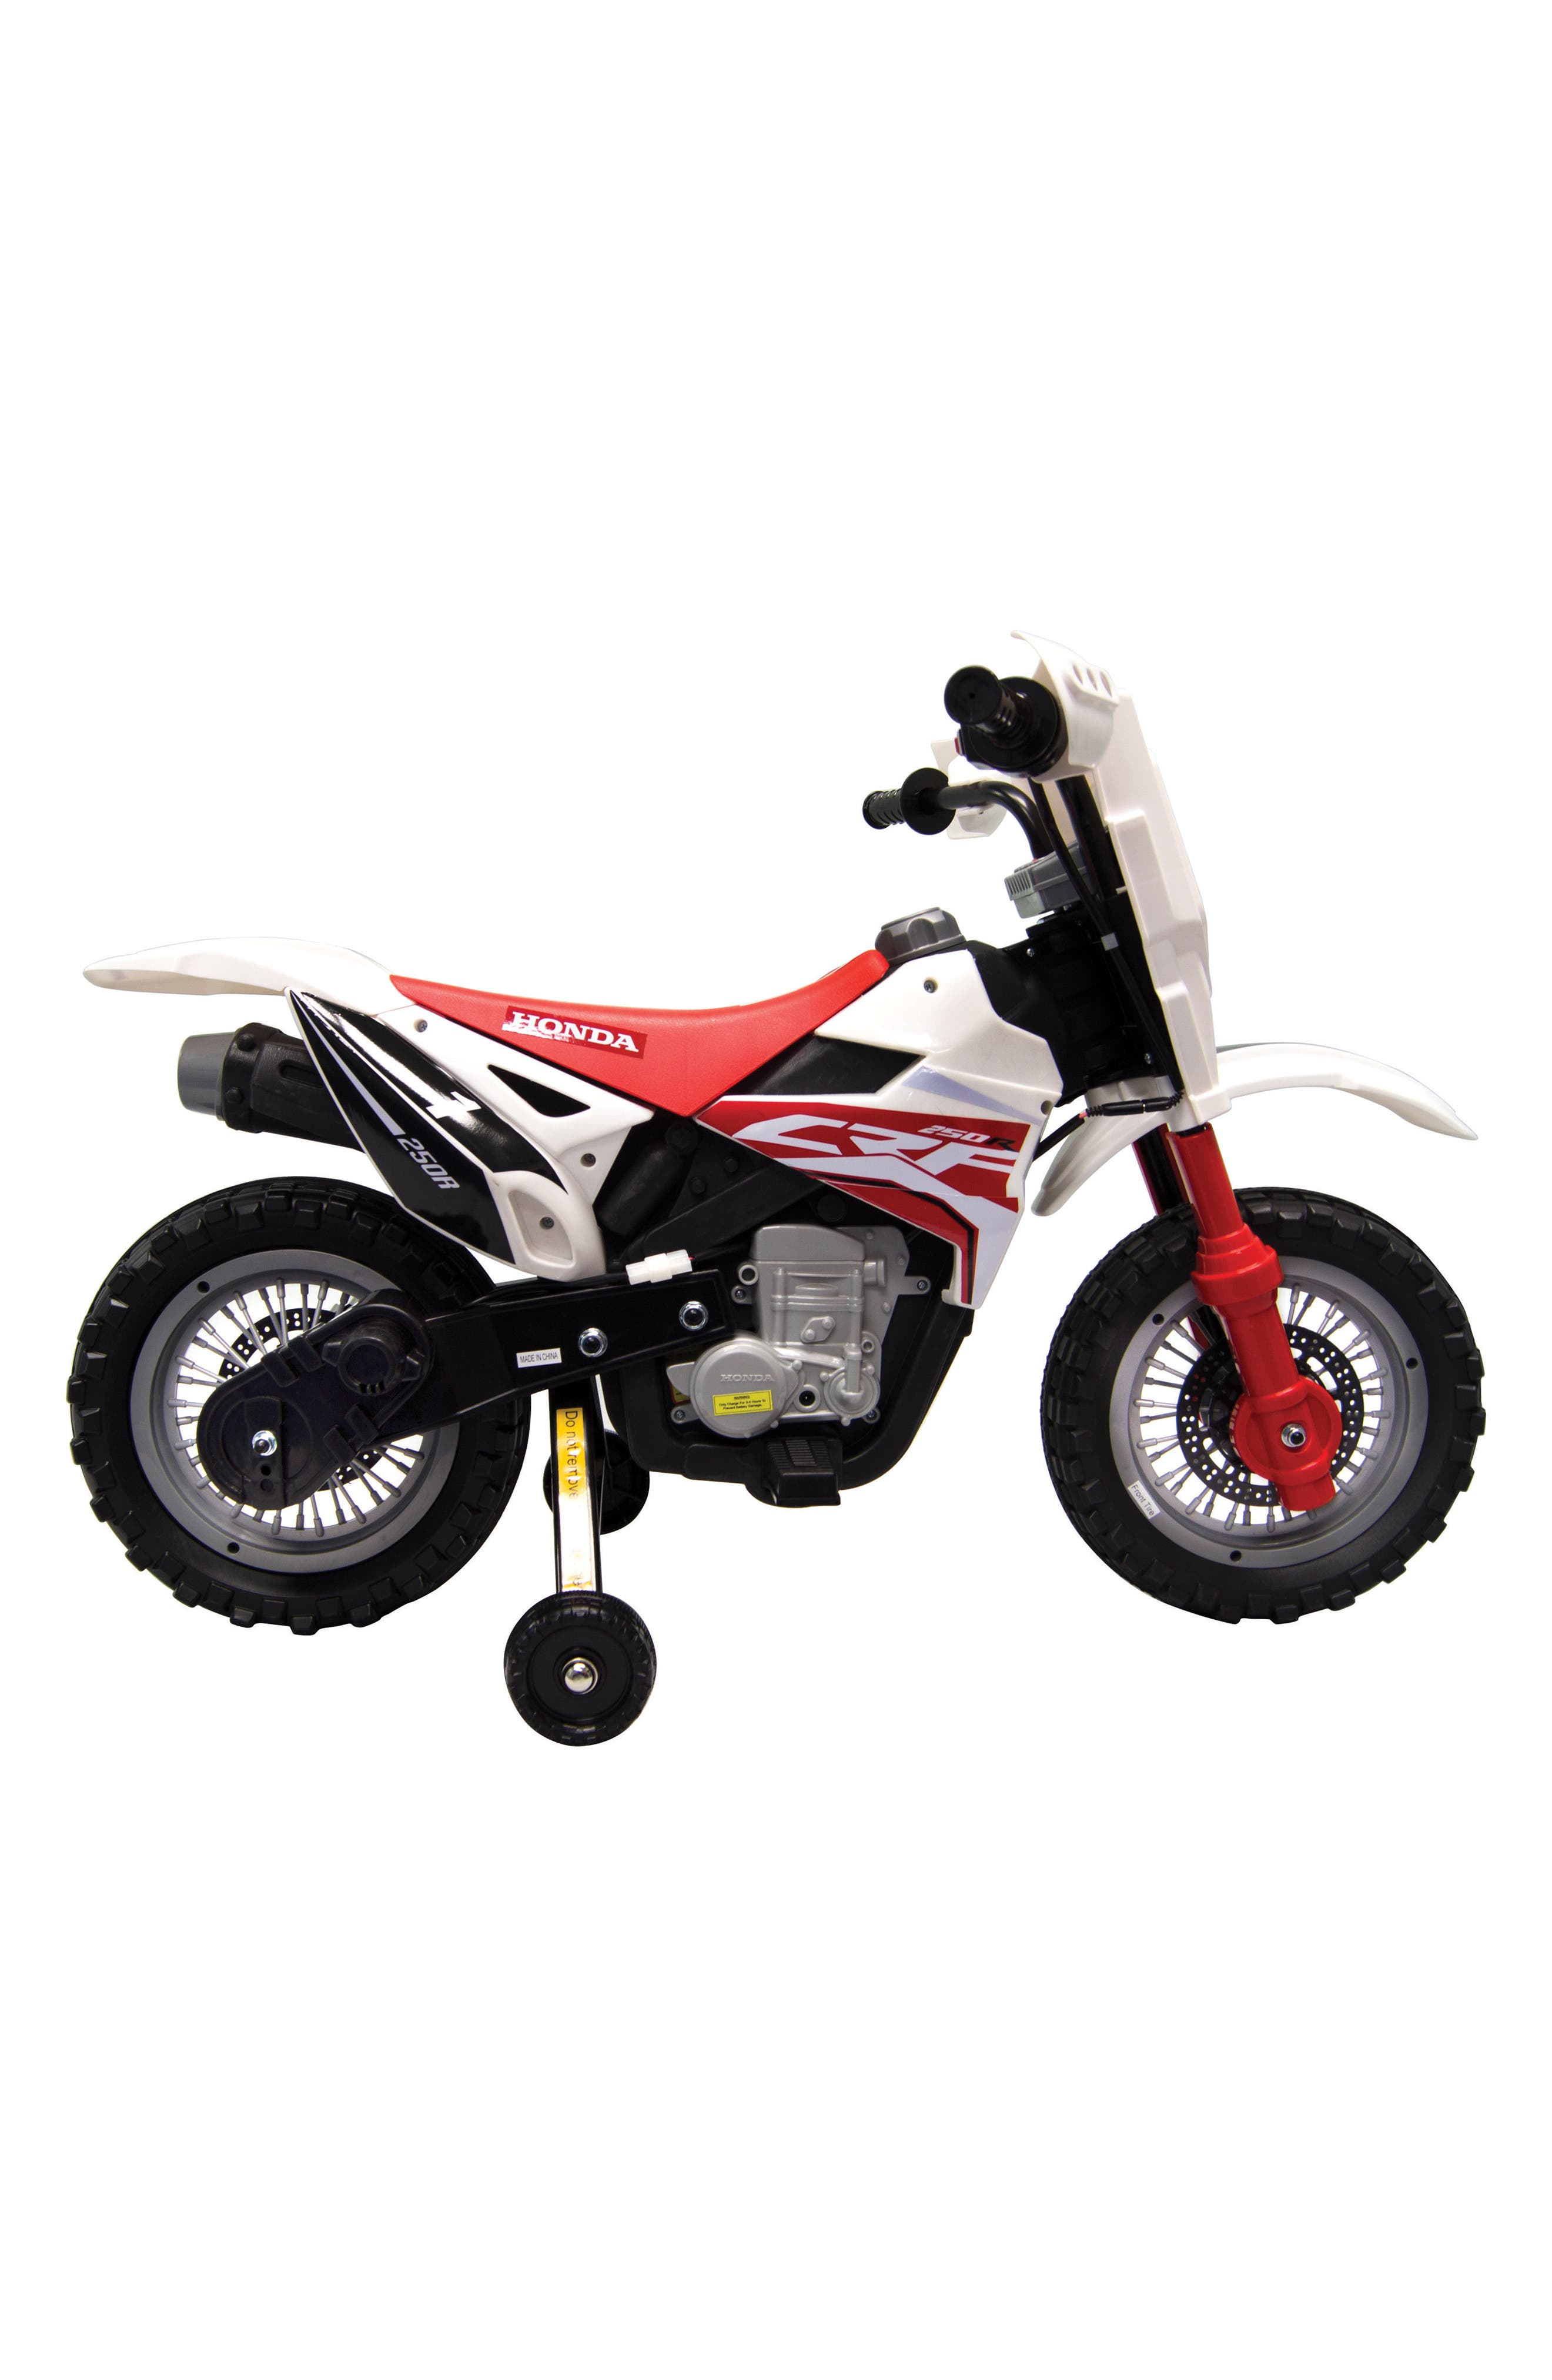 Honda Dirt Bike Ride-On Toy Motorcycle,                             Alternate thumbnail 3, color,                             White